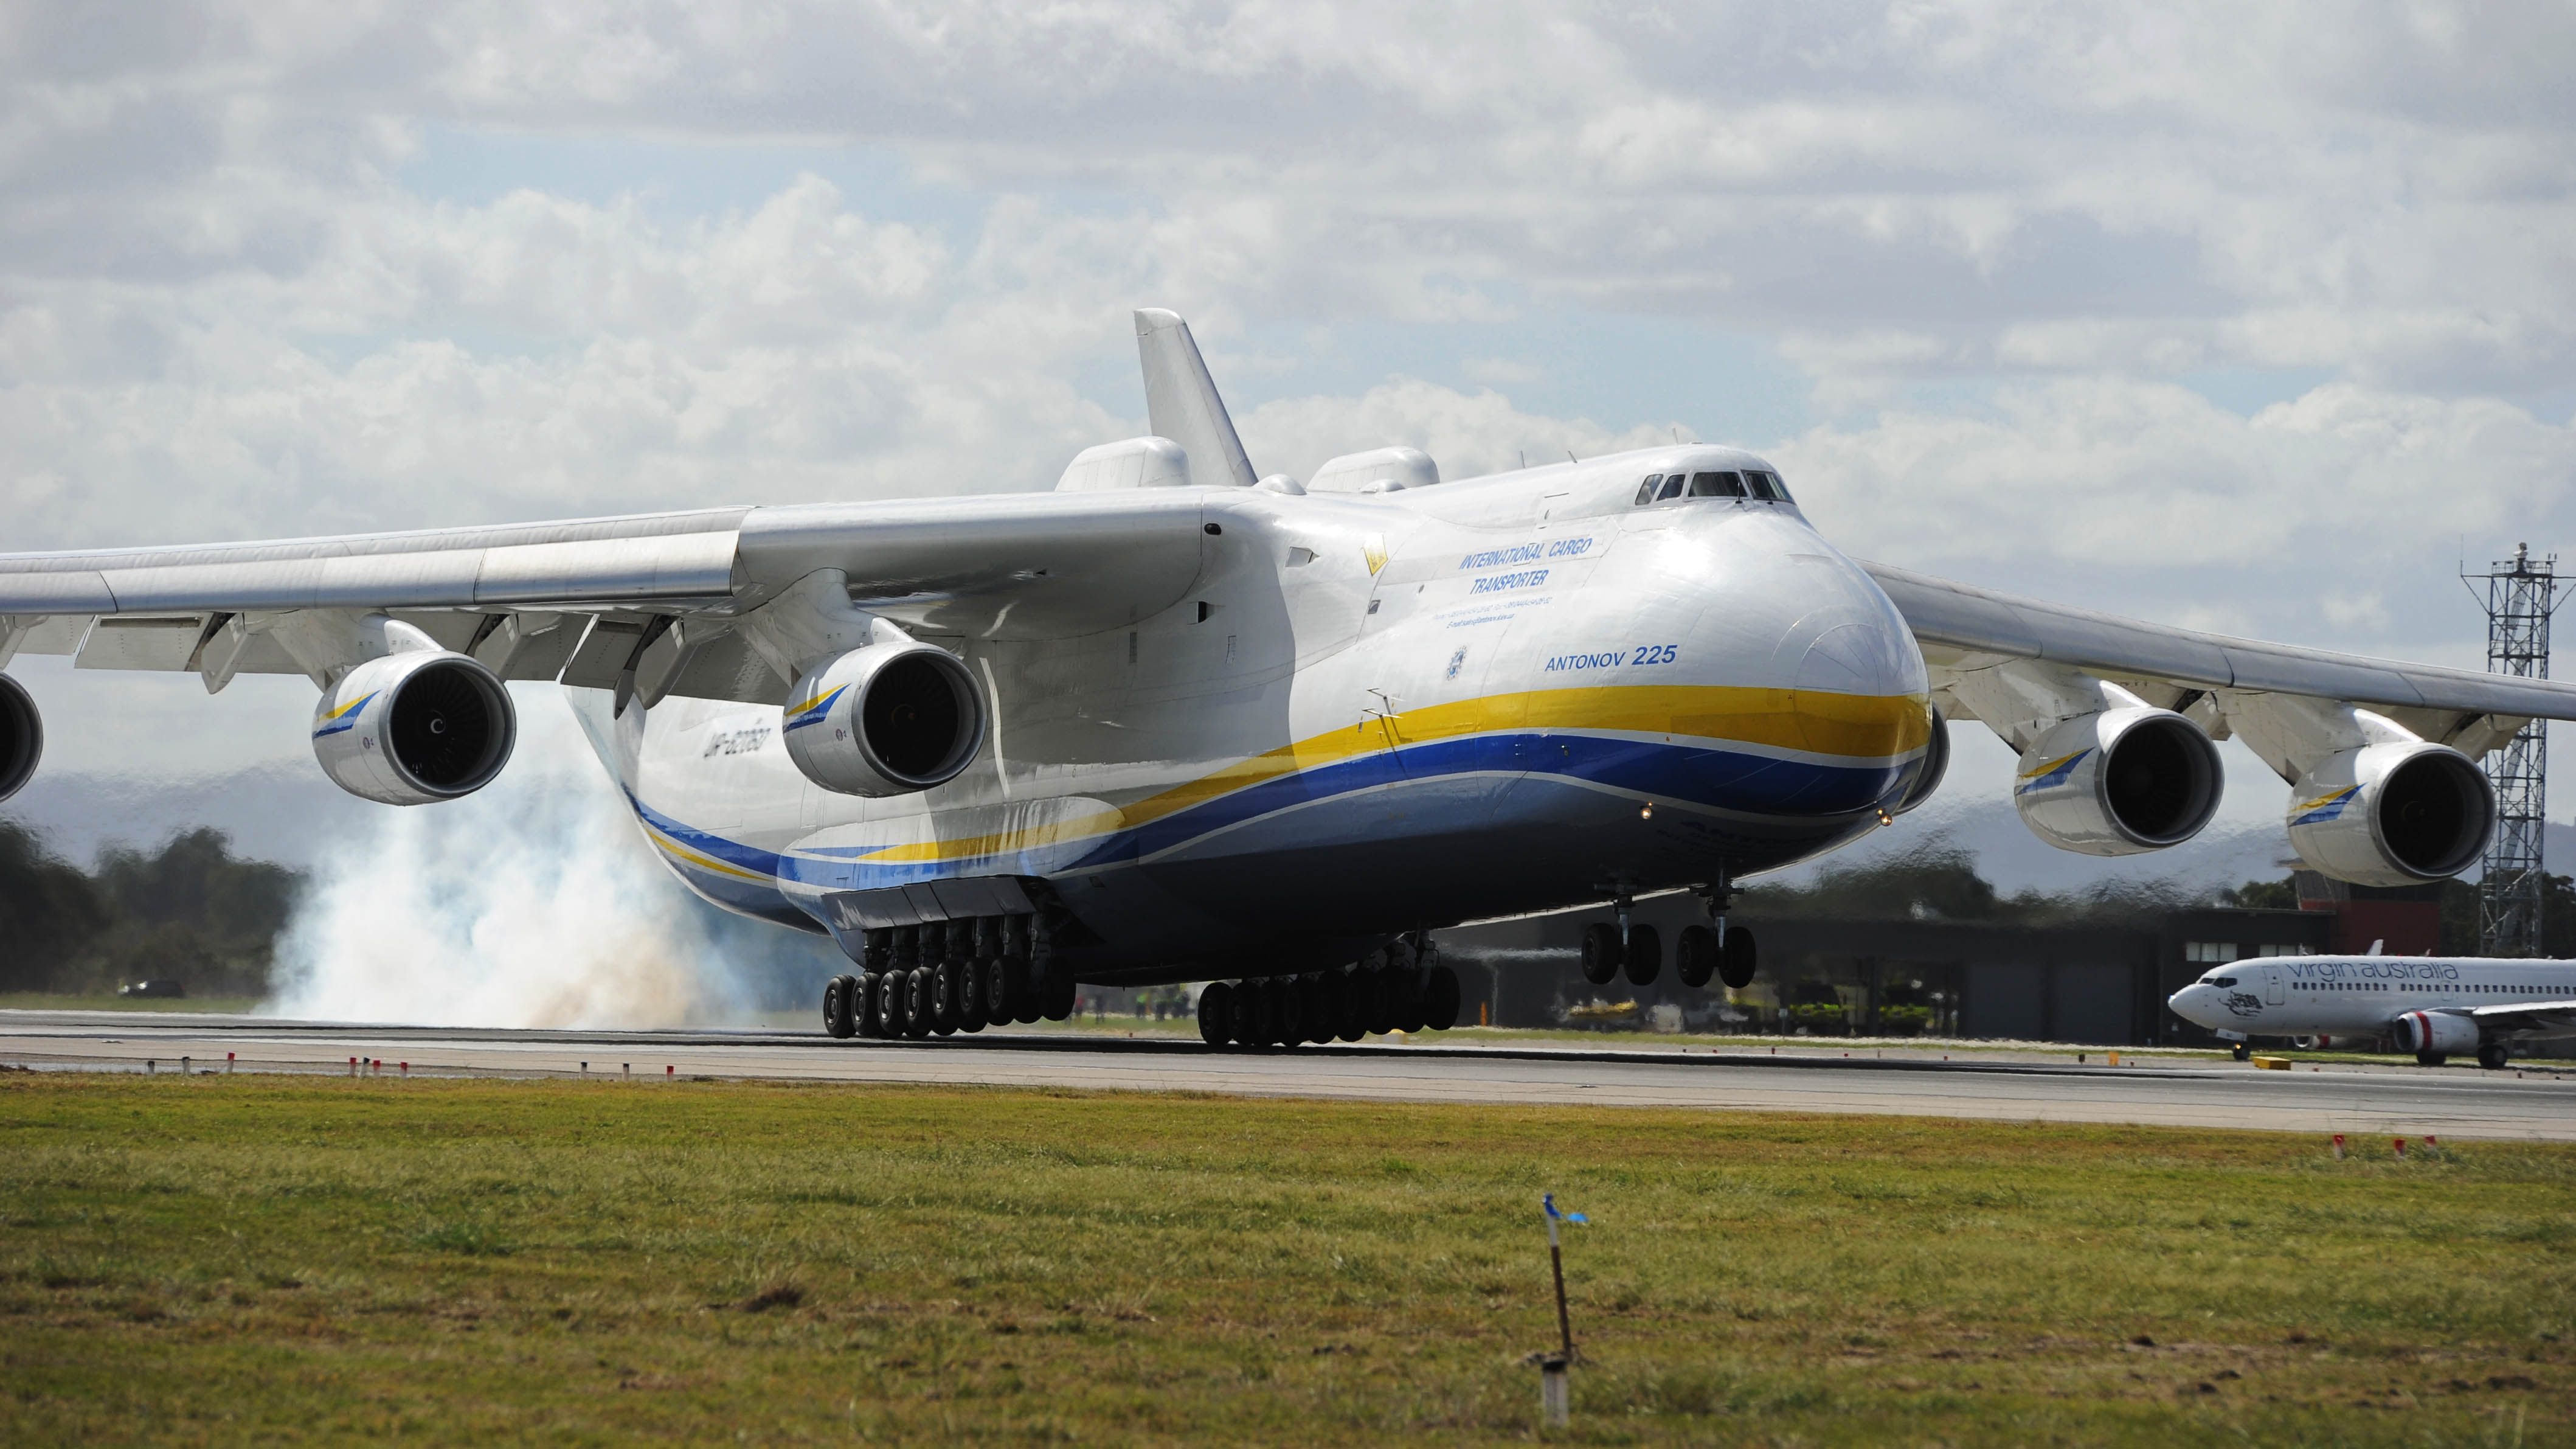 Antonov An-225: Enormous, unfinished plane lies hidden in